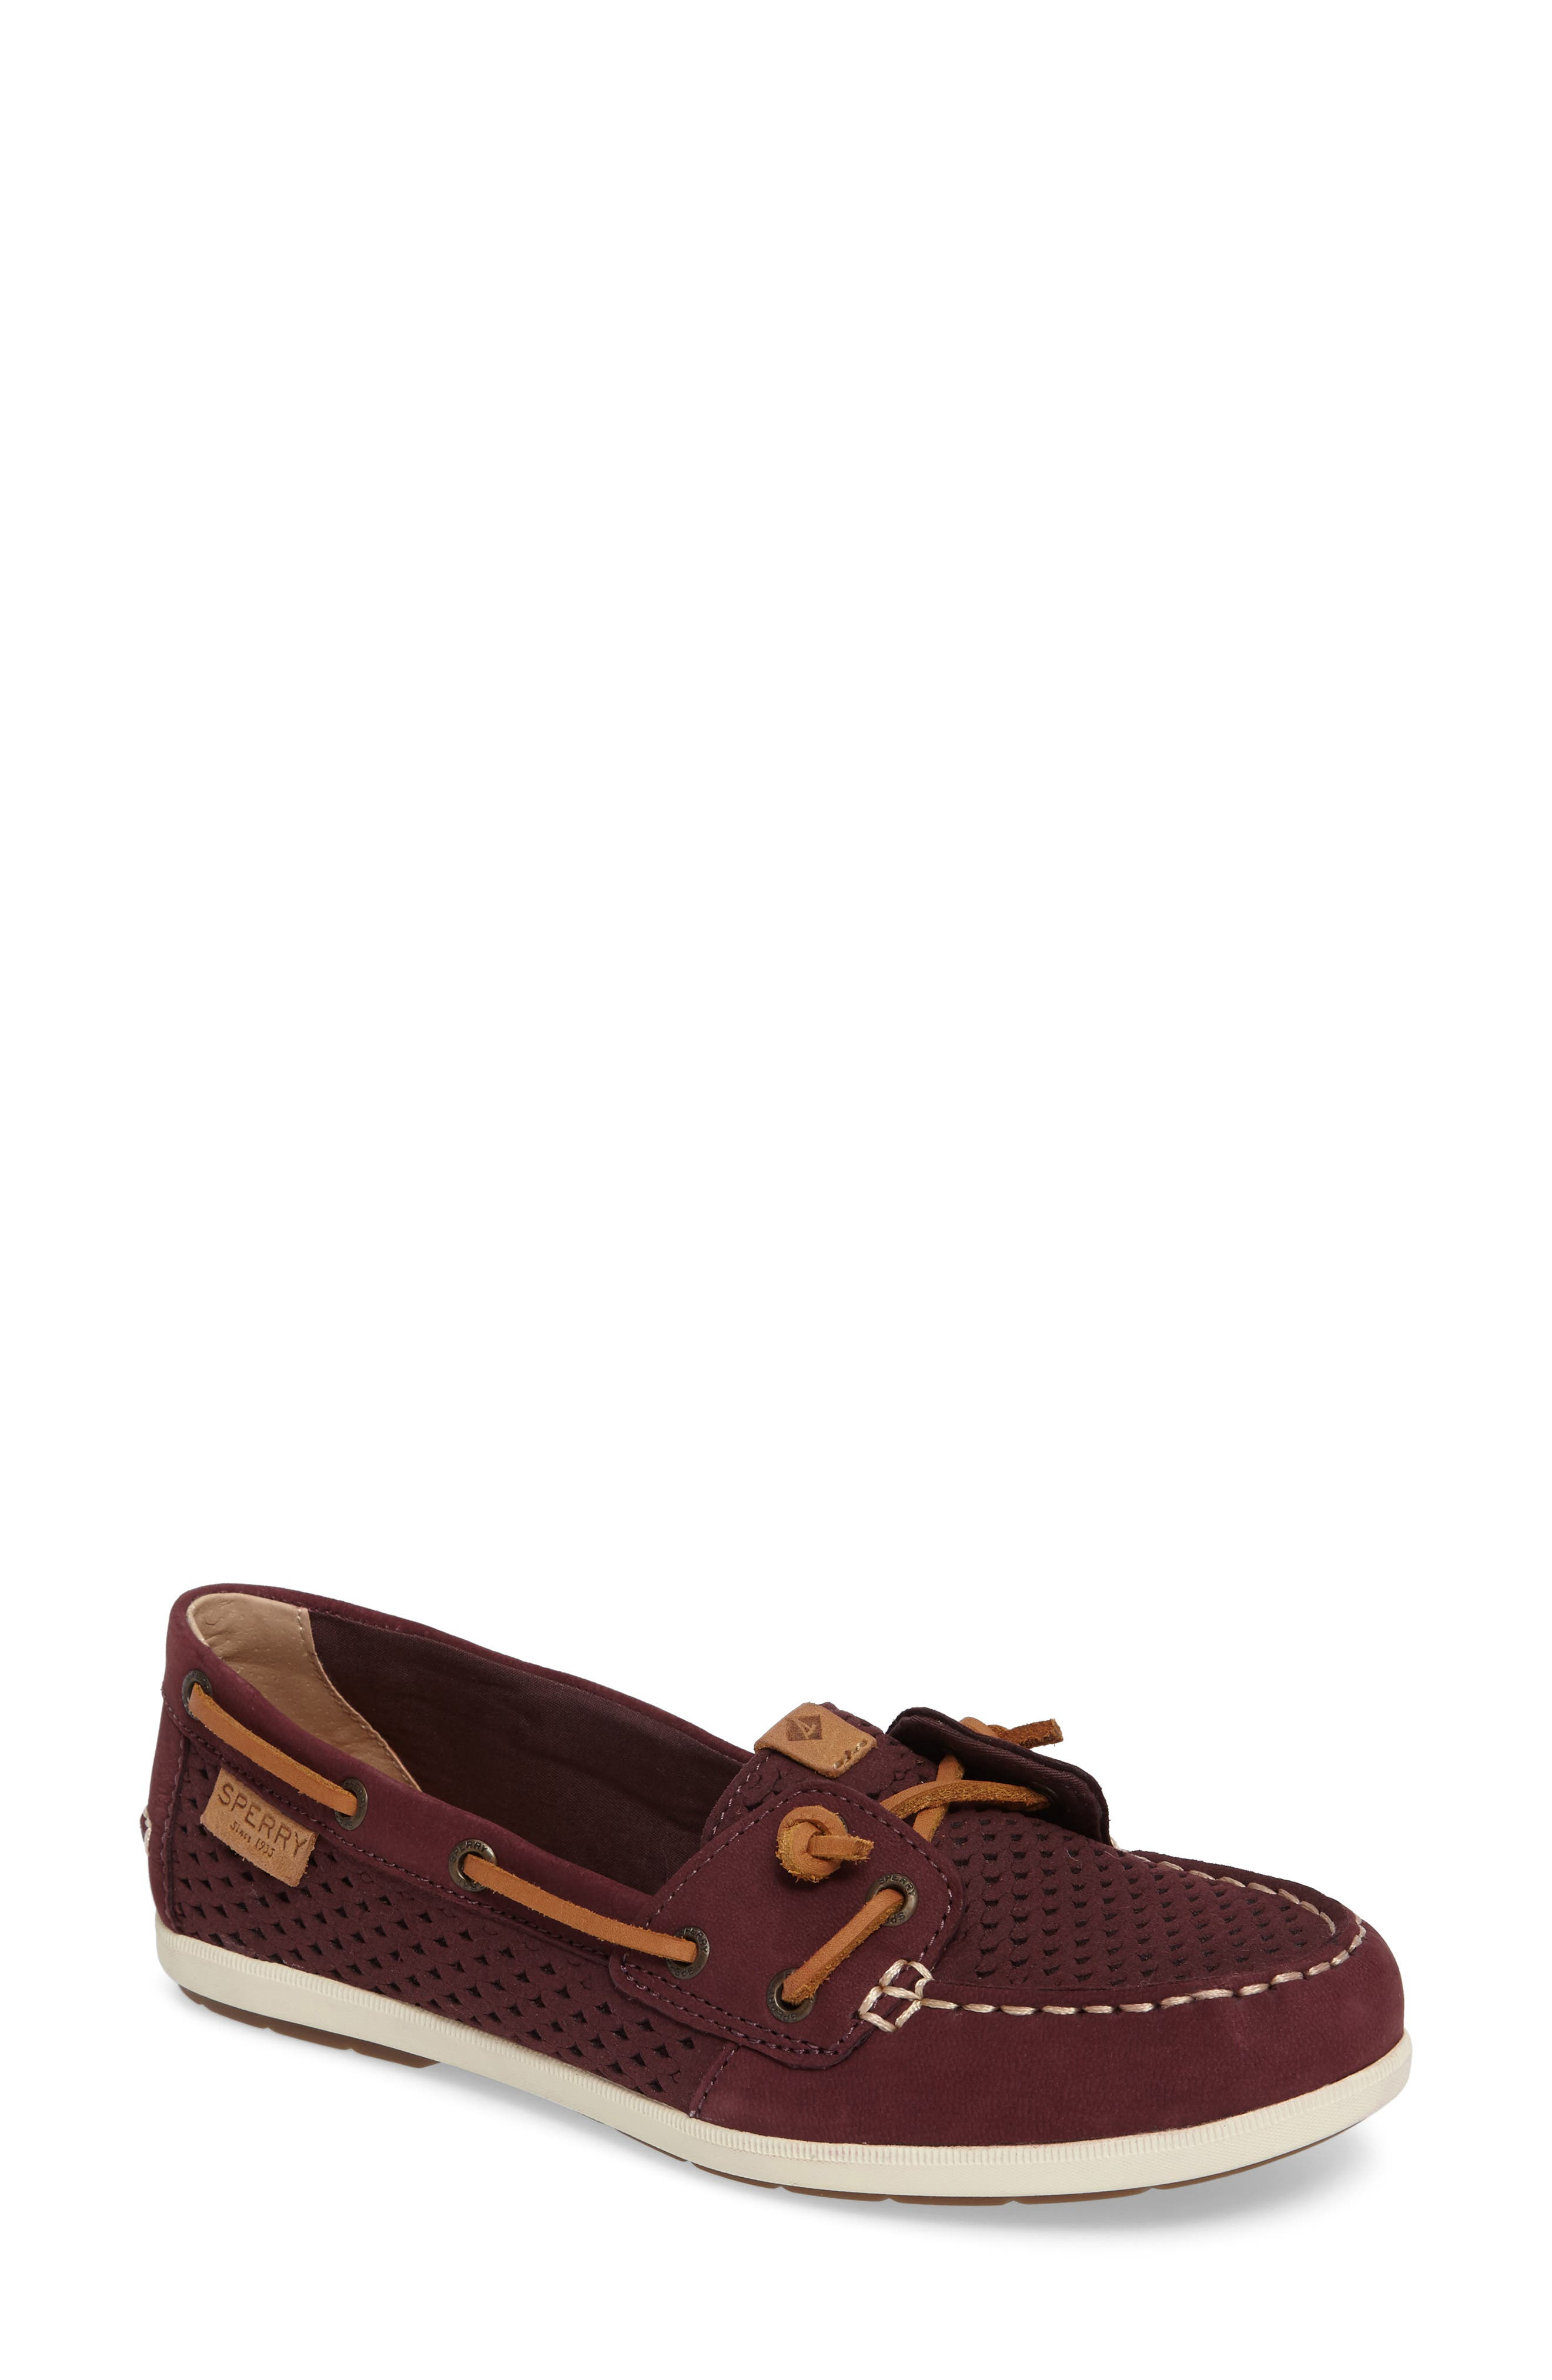 Main Image - Sperry Coil Ivy Perforated Boat Shoe (Women)